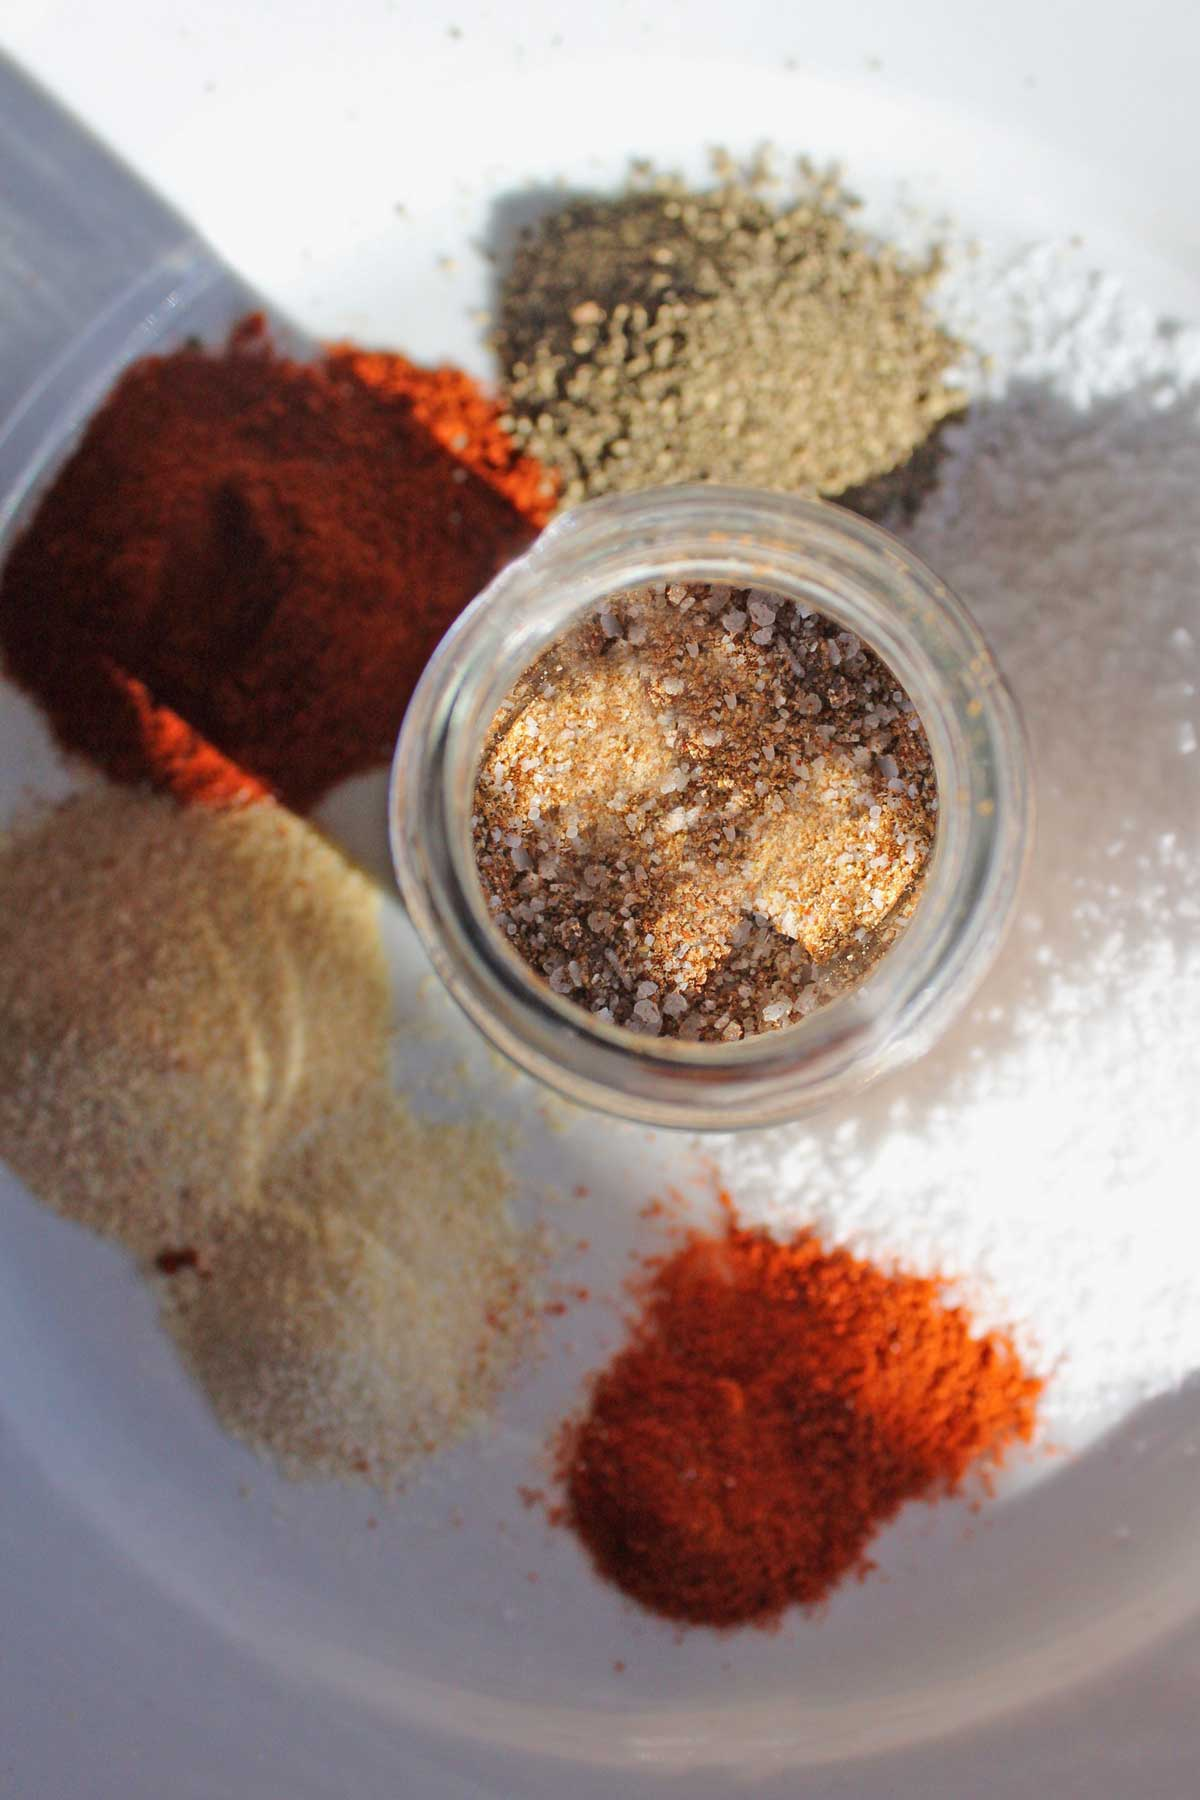 This easy homemade seasoned salt recipe is yet another all-purpose spice blend you can make at home that can add something special to your dishes.